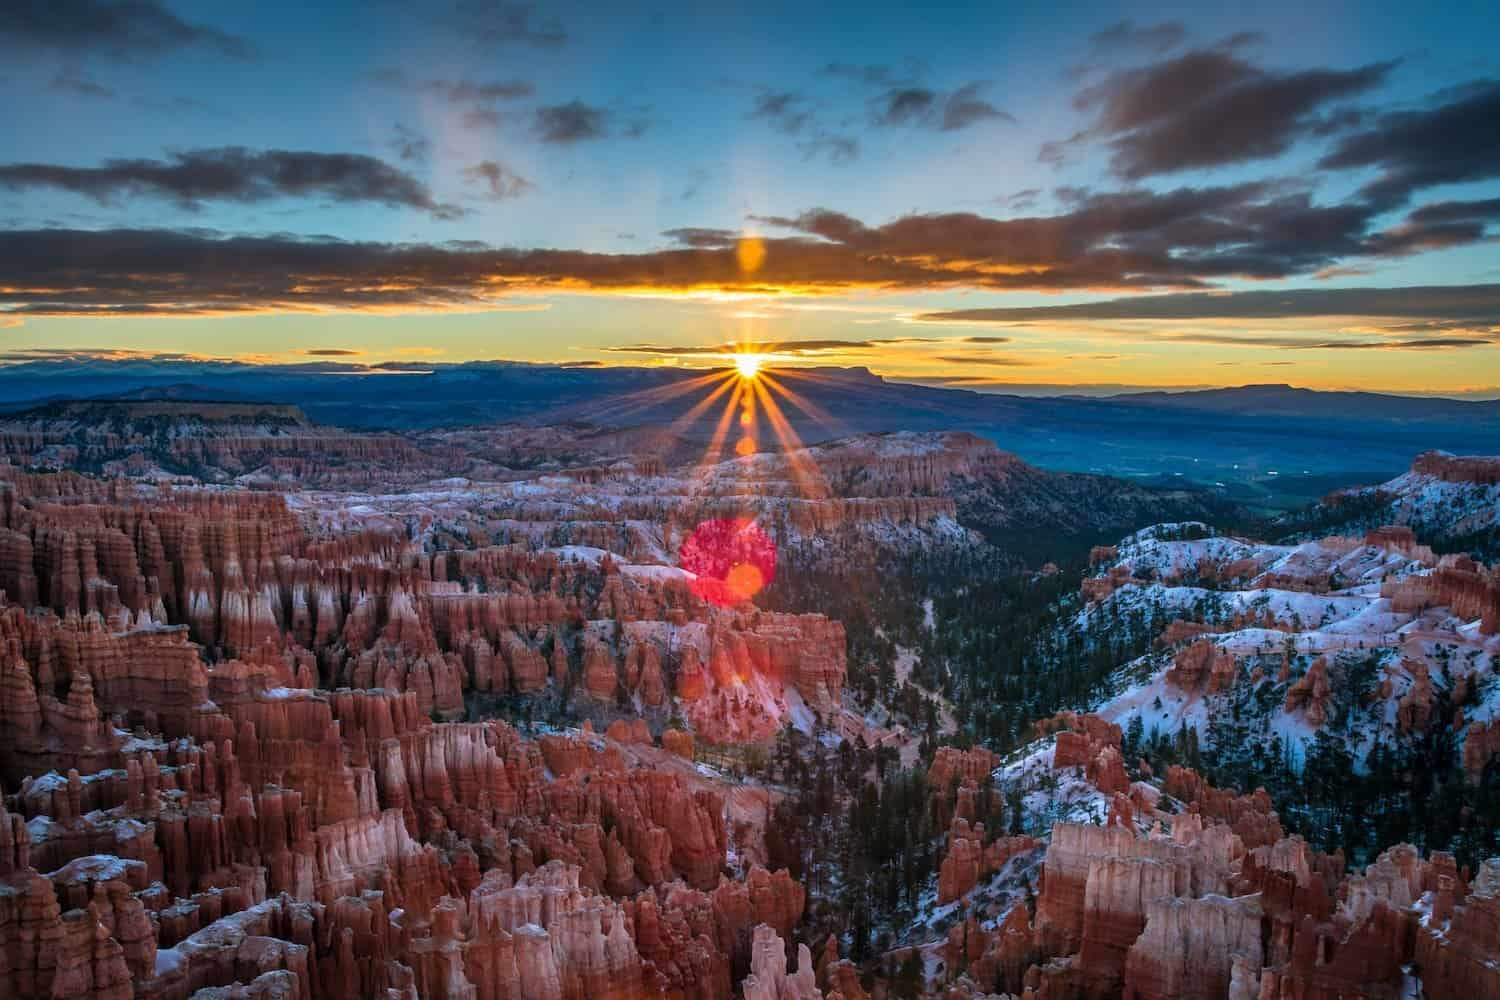 Bryce Canyon National Park Stargazing - Inspiration Point at Sunset